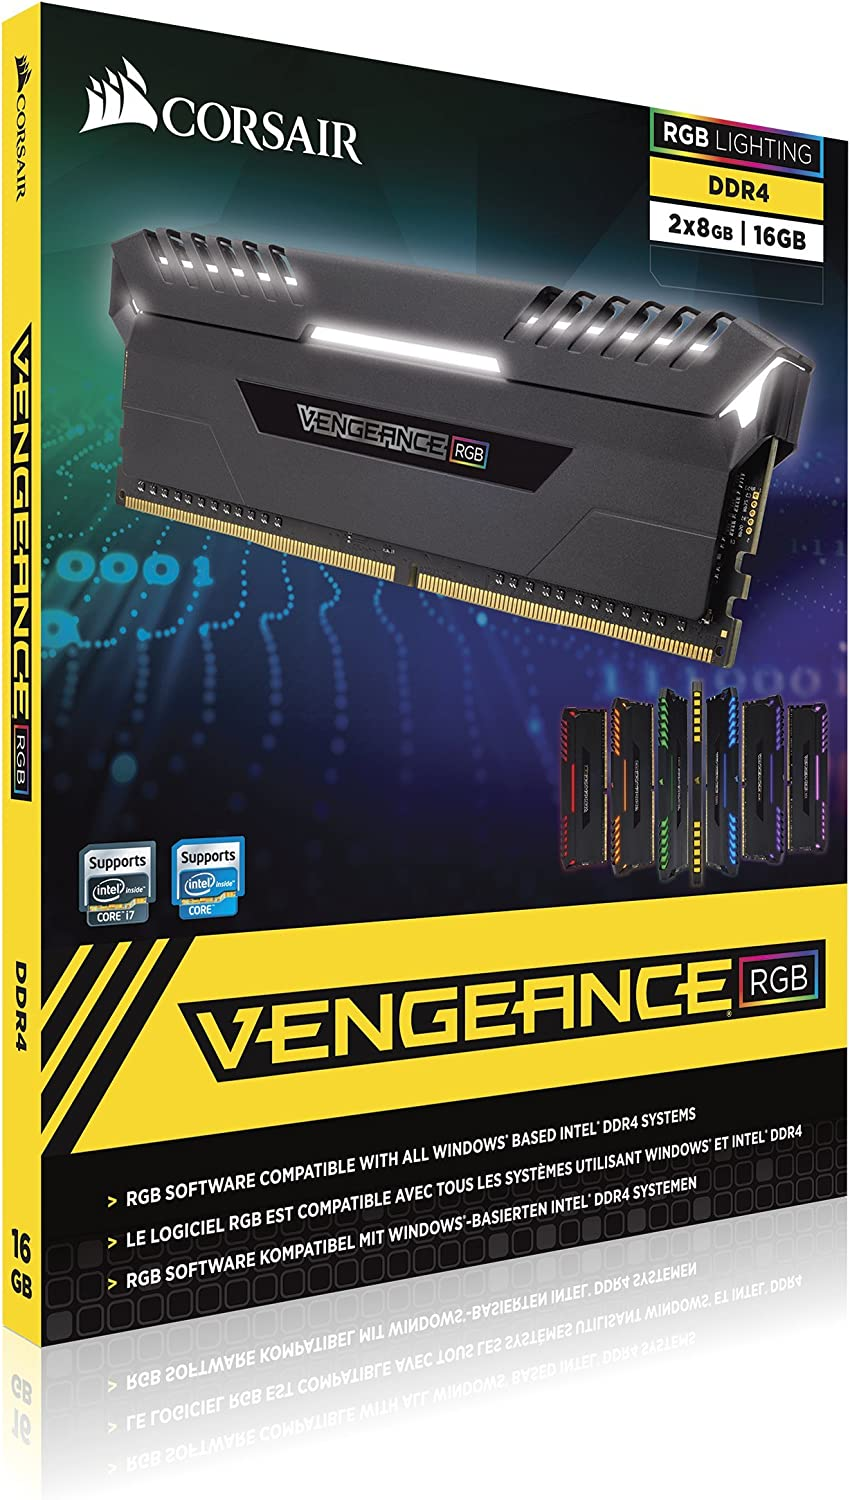 CORSAIR Vengeance RGB 16GB (2x8GB) DDR4 3000MHz C16 Desktop Memory - Black